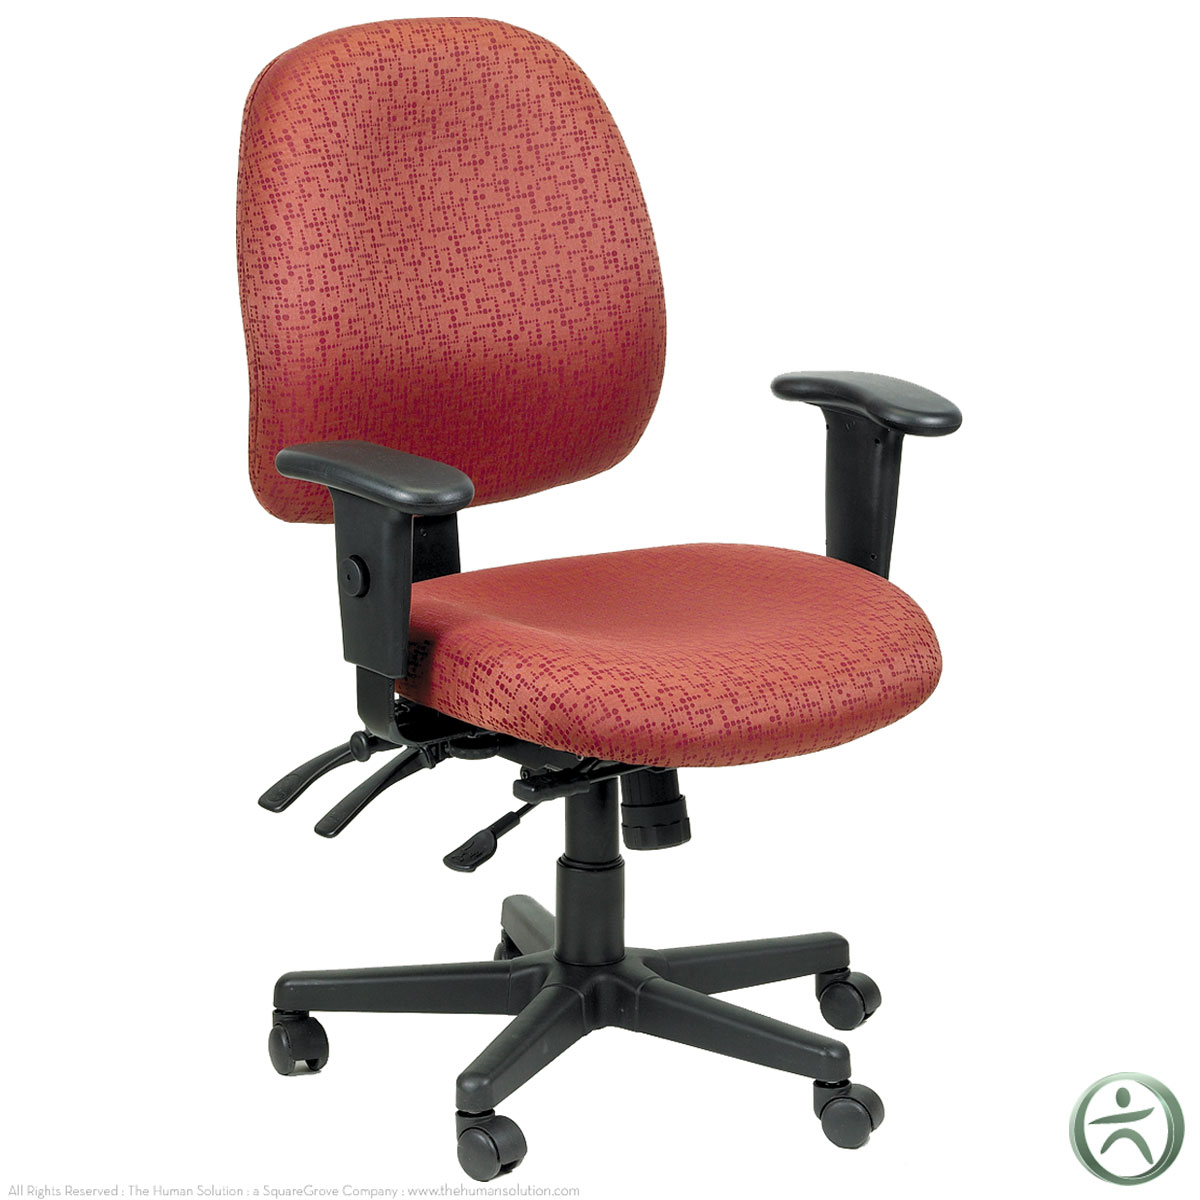 Eurotech 4x4 multi function task chair 49802a for Function chairs